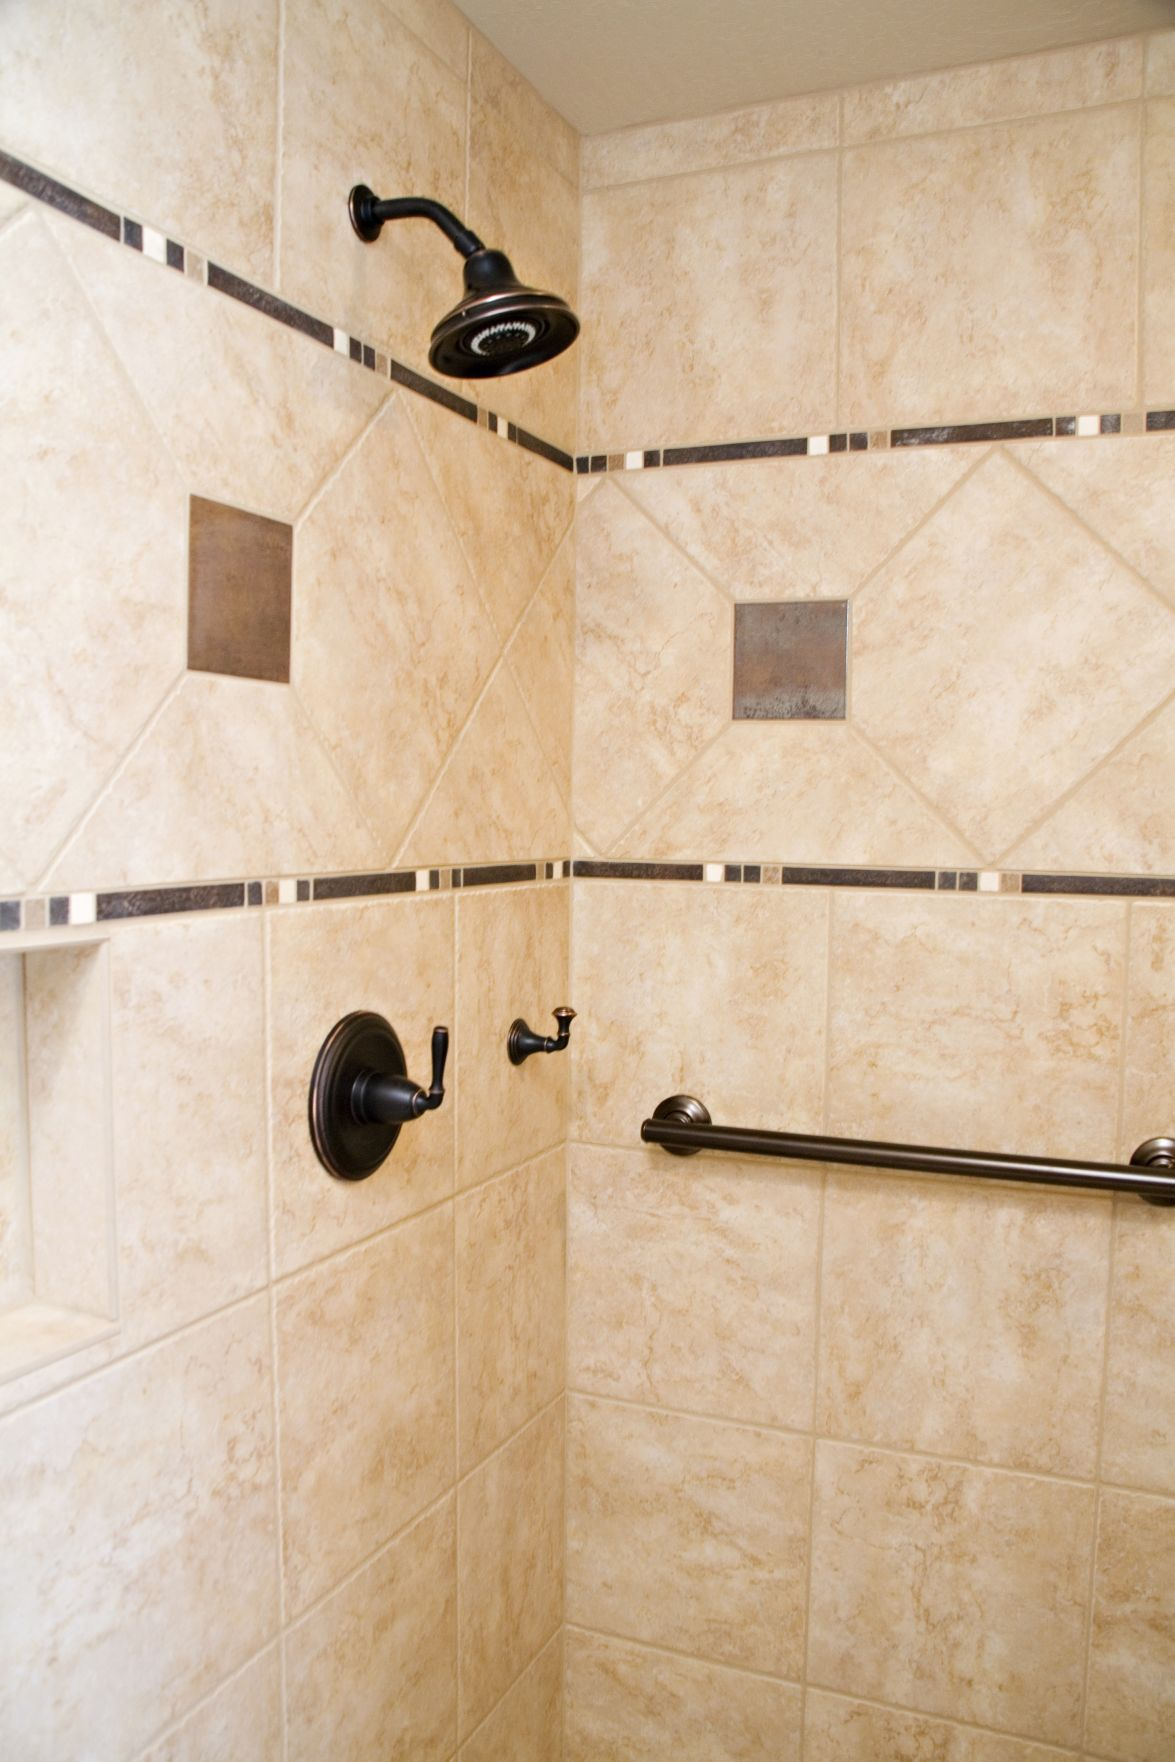 Can I Install A Grab Bar In Shower Walls Covered In Cultured Marble?